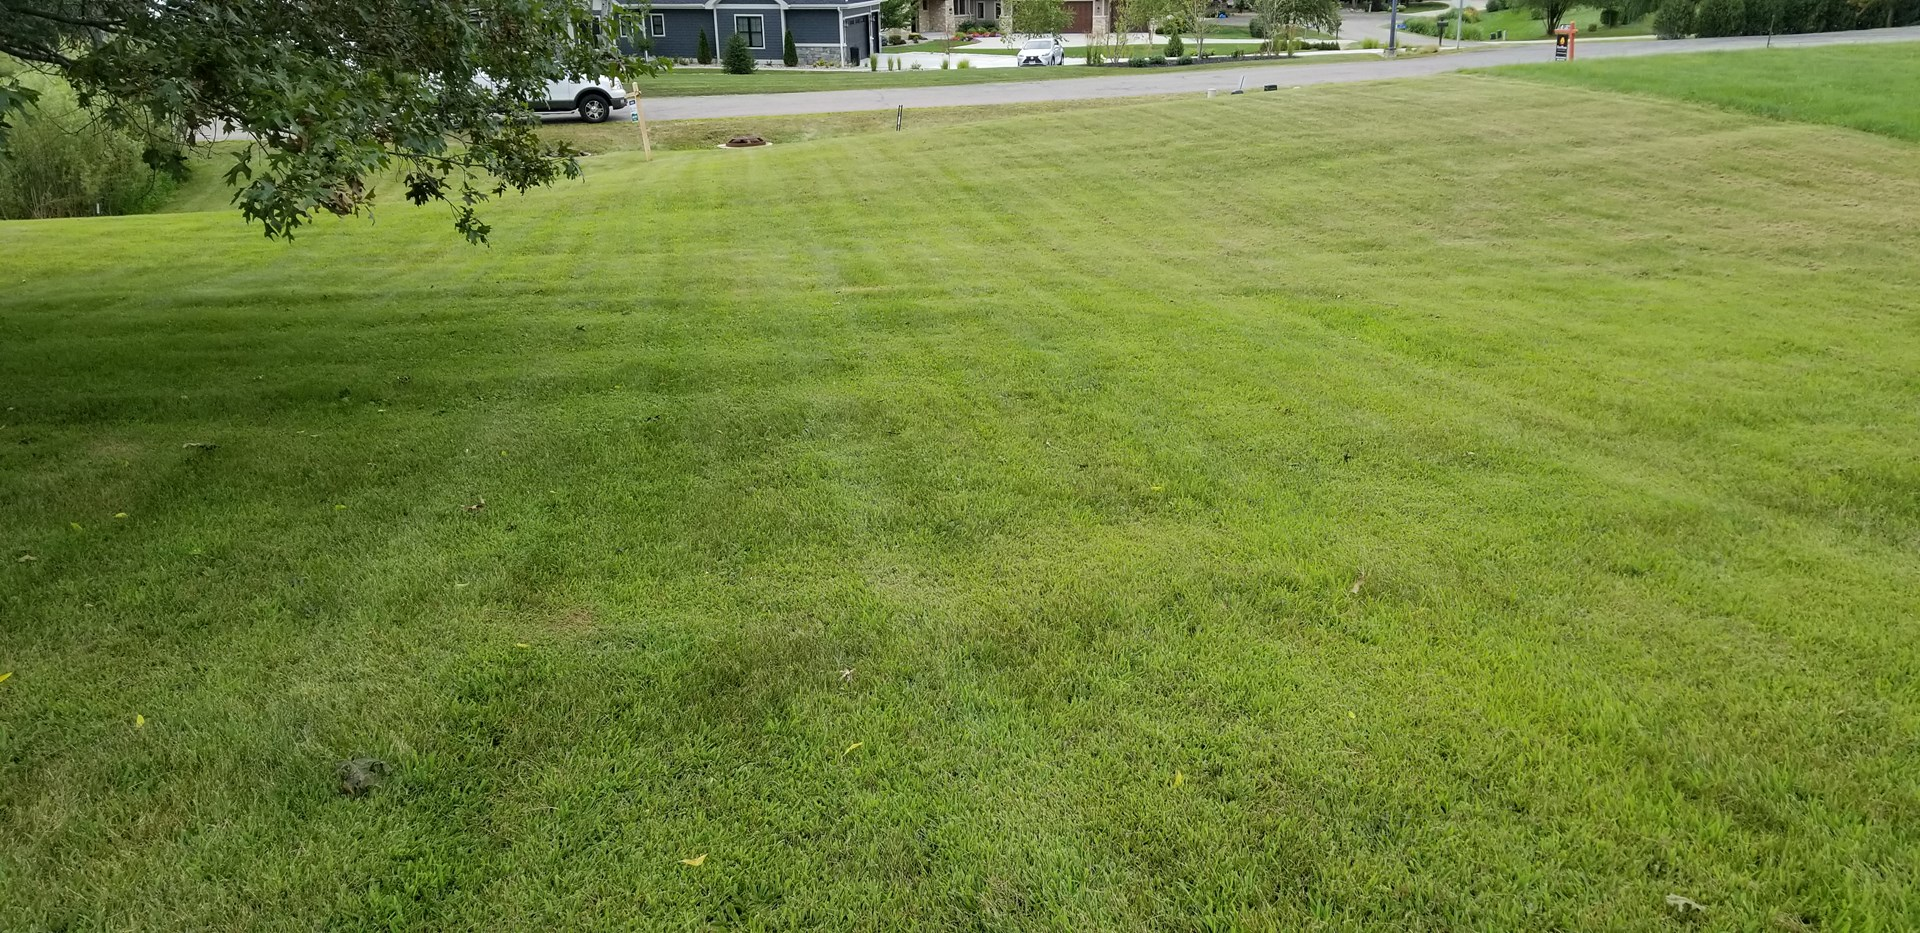 Lot with Lake Wisconsin Views in Sauk County WI